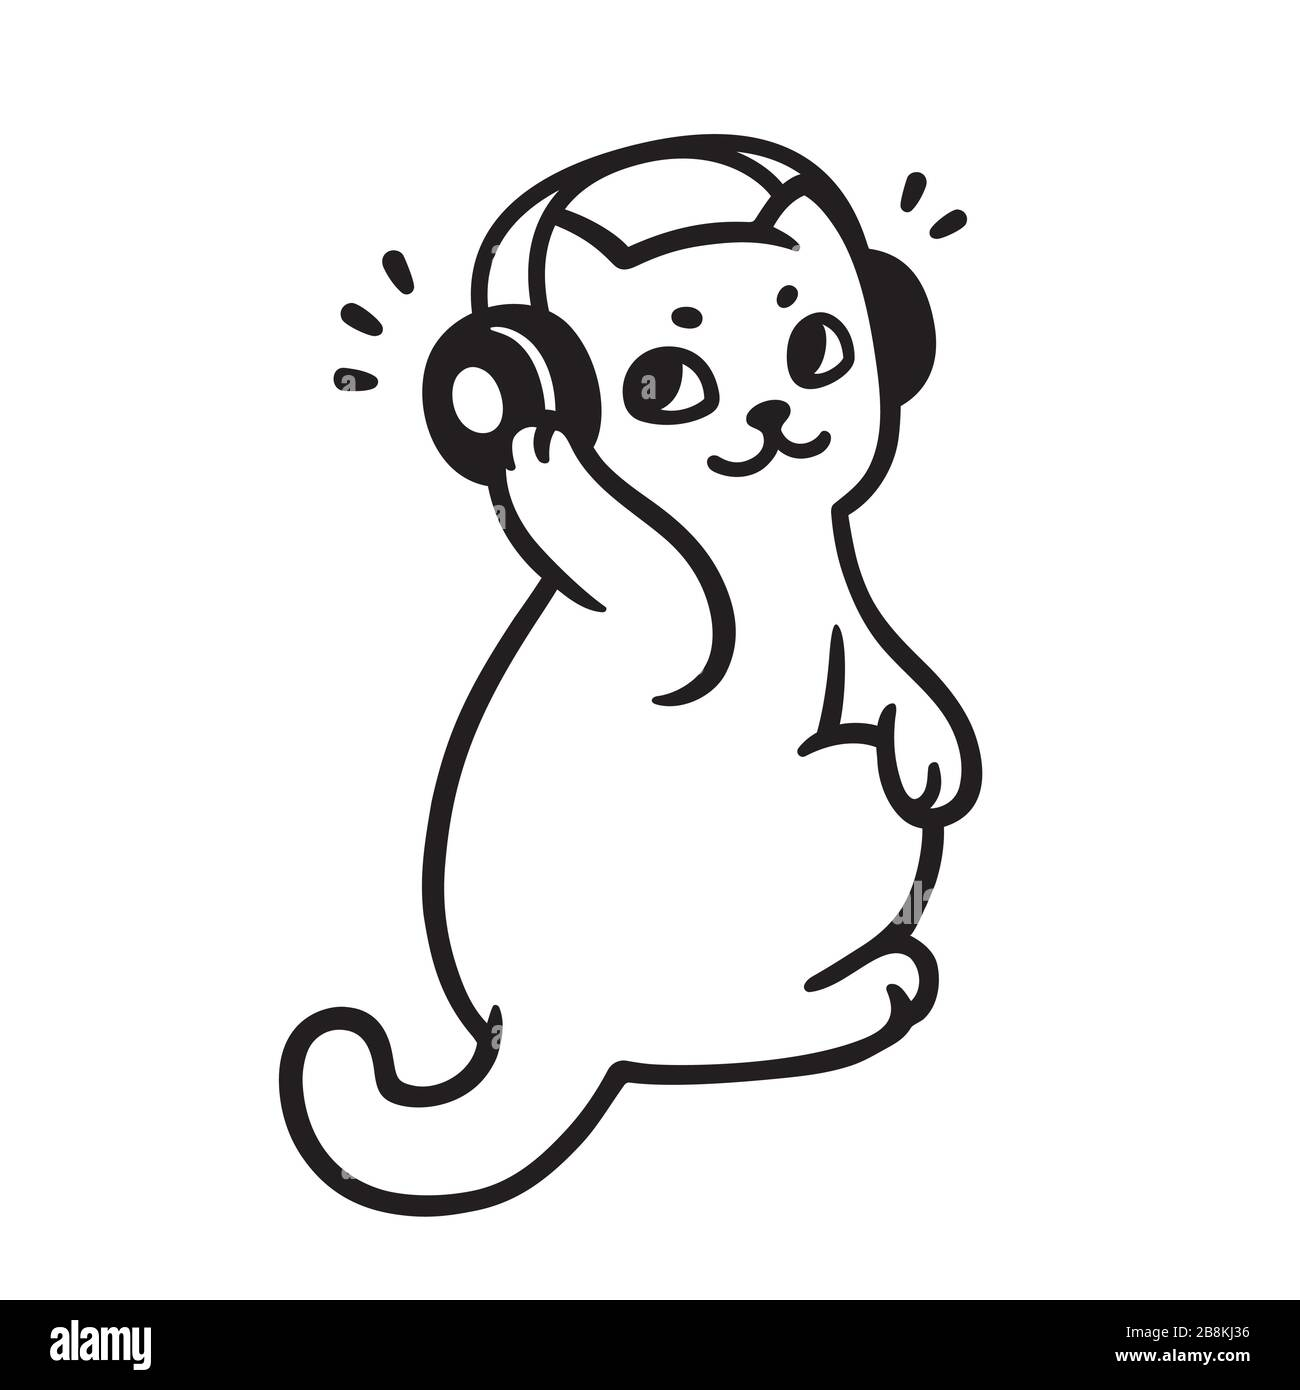 Cartoon Cat With Headphones Listening To Music Cute Music Fan Kitty Drawing Black And White Vector Illustration Stock Vector Image Art Alamy